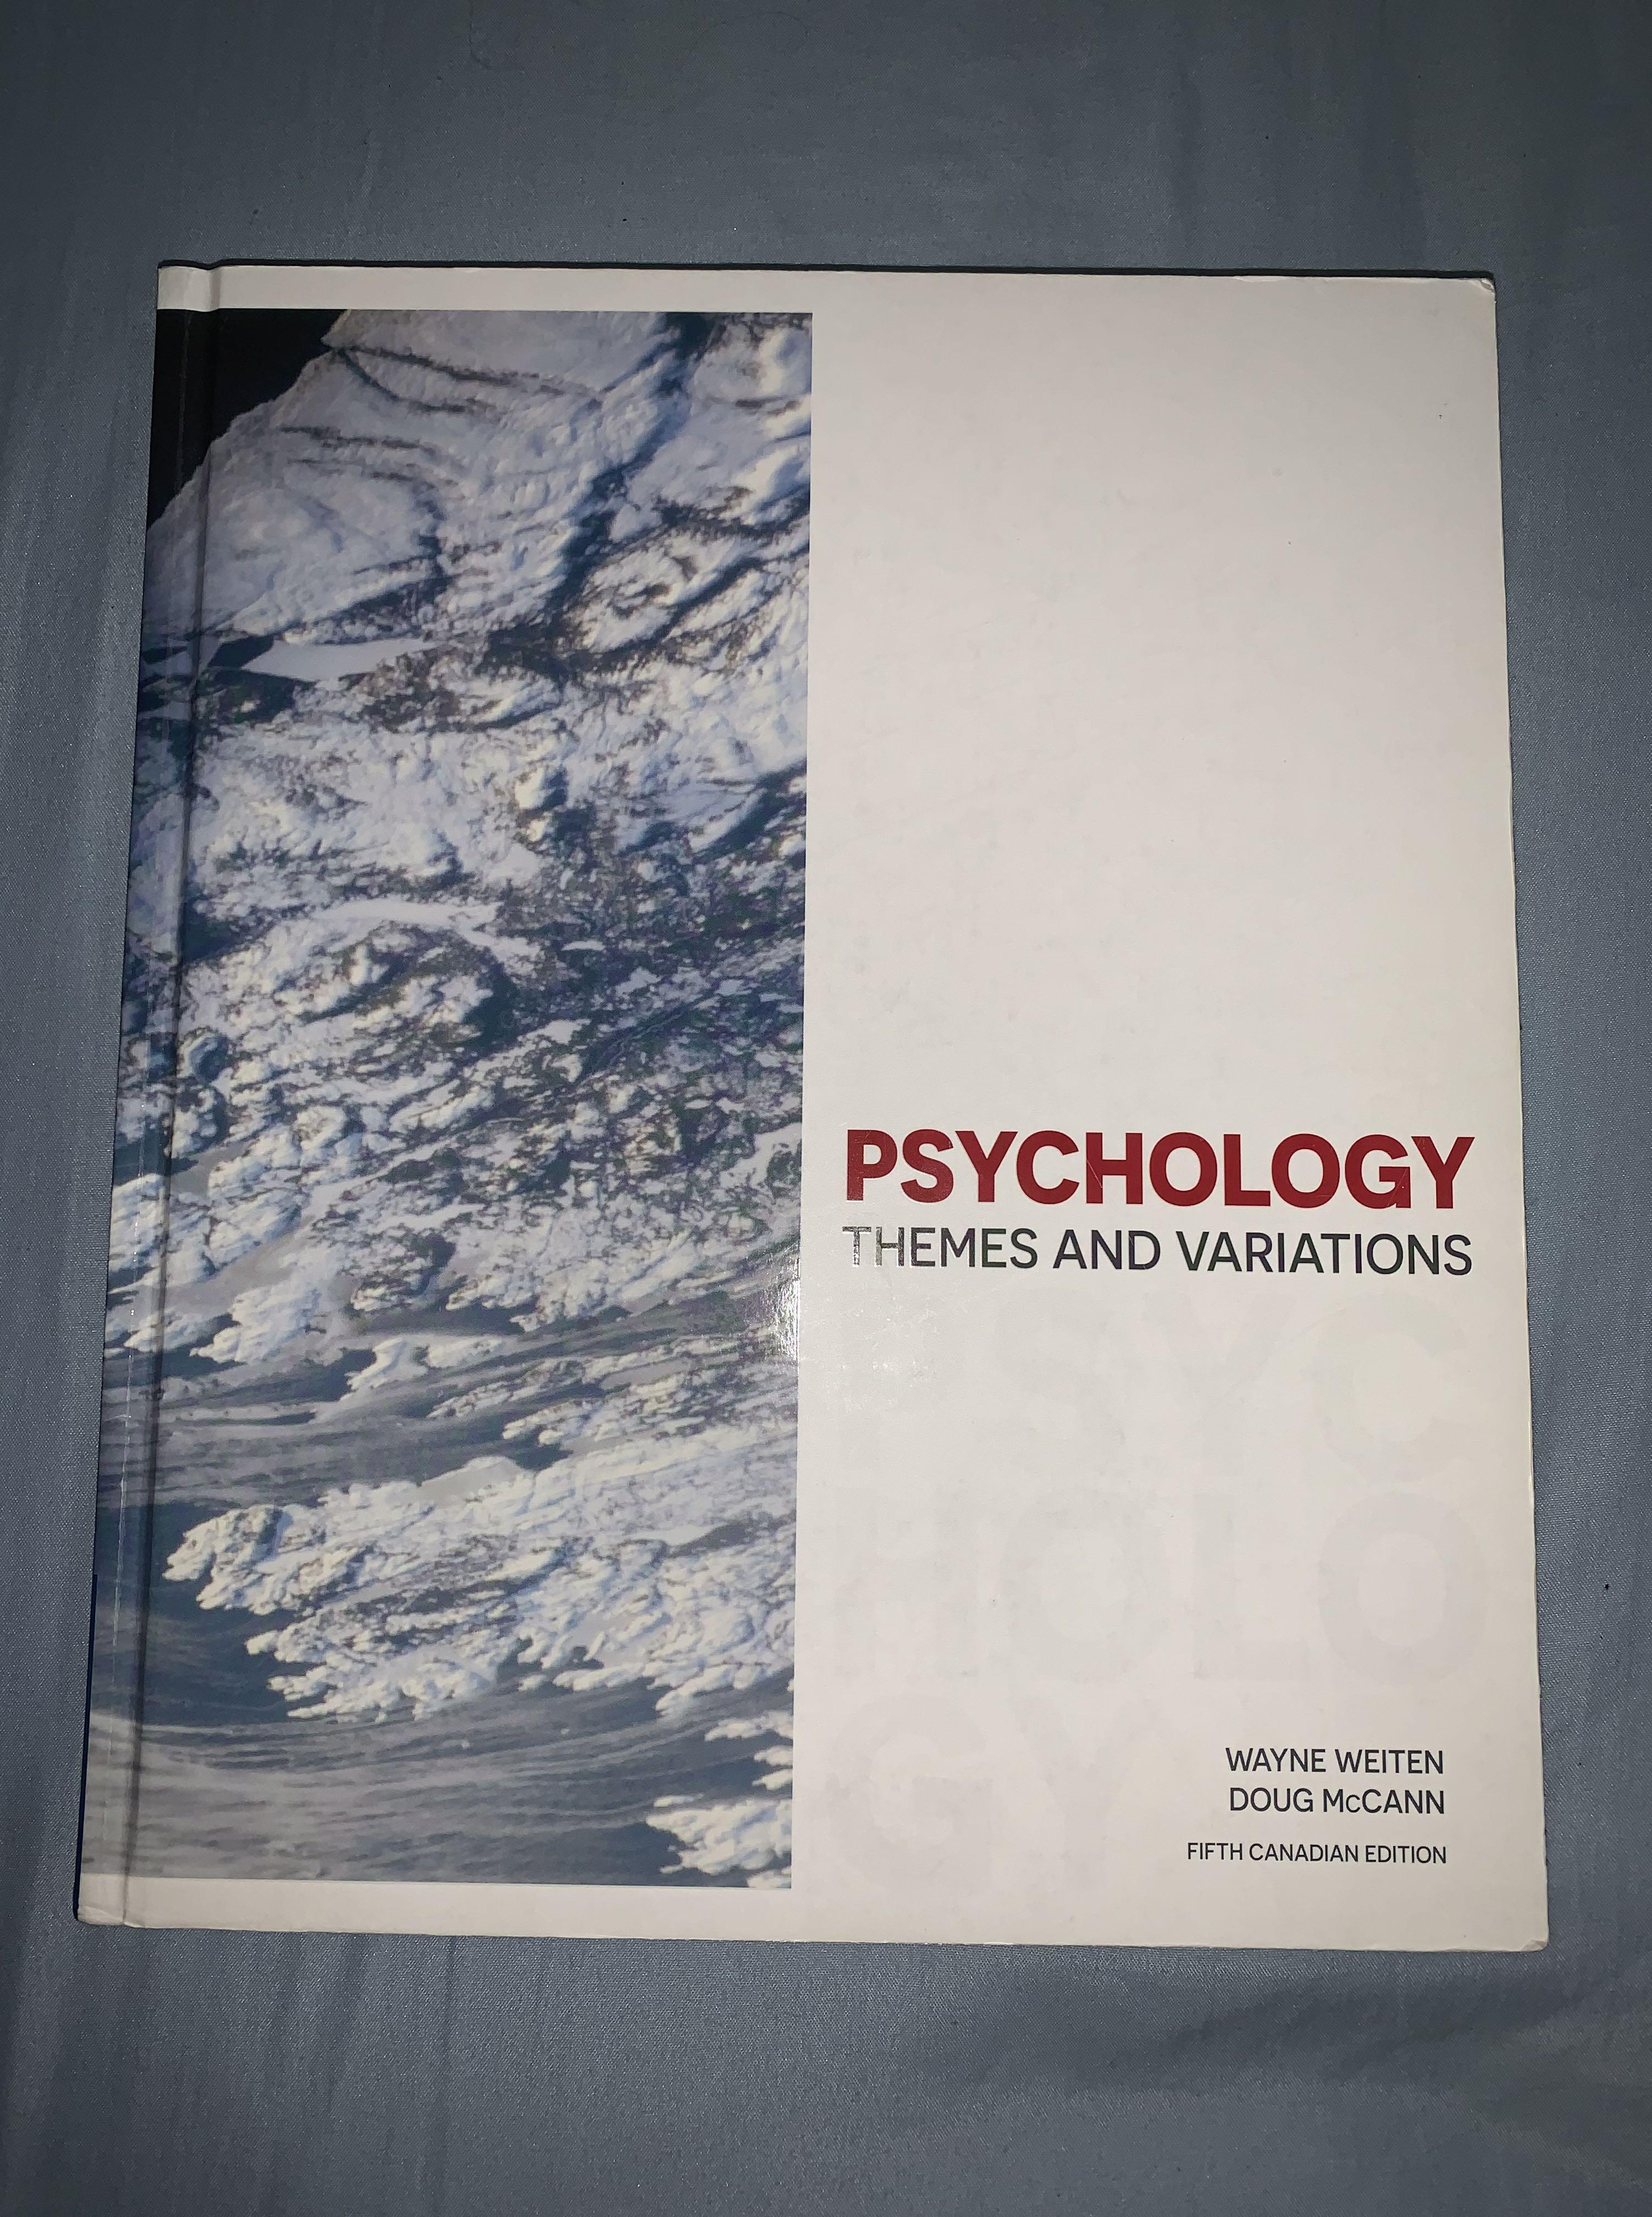 Psychology Theme and Variations (5th Edition) - Wayne Weiten and Doug McCann